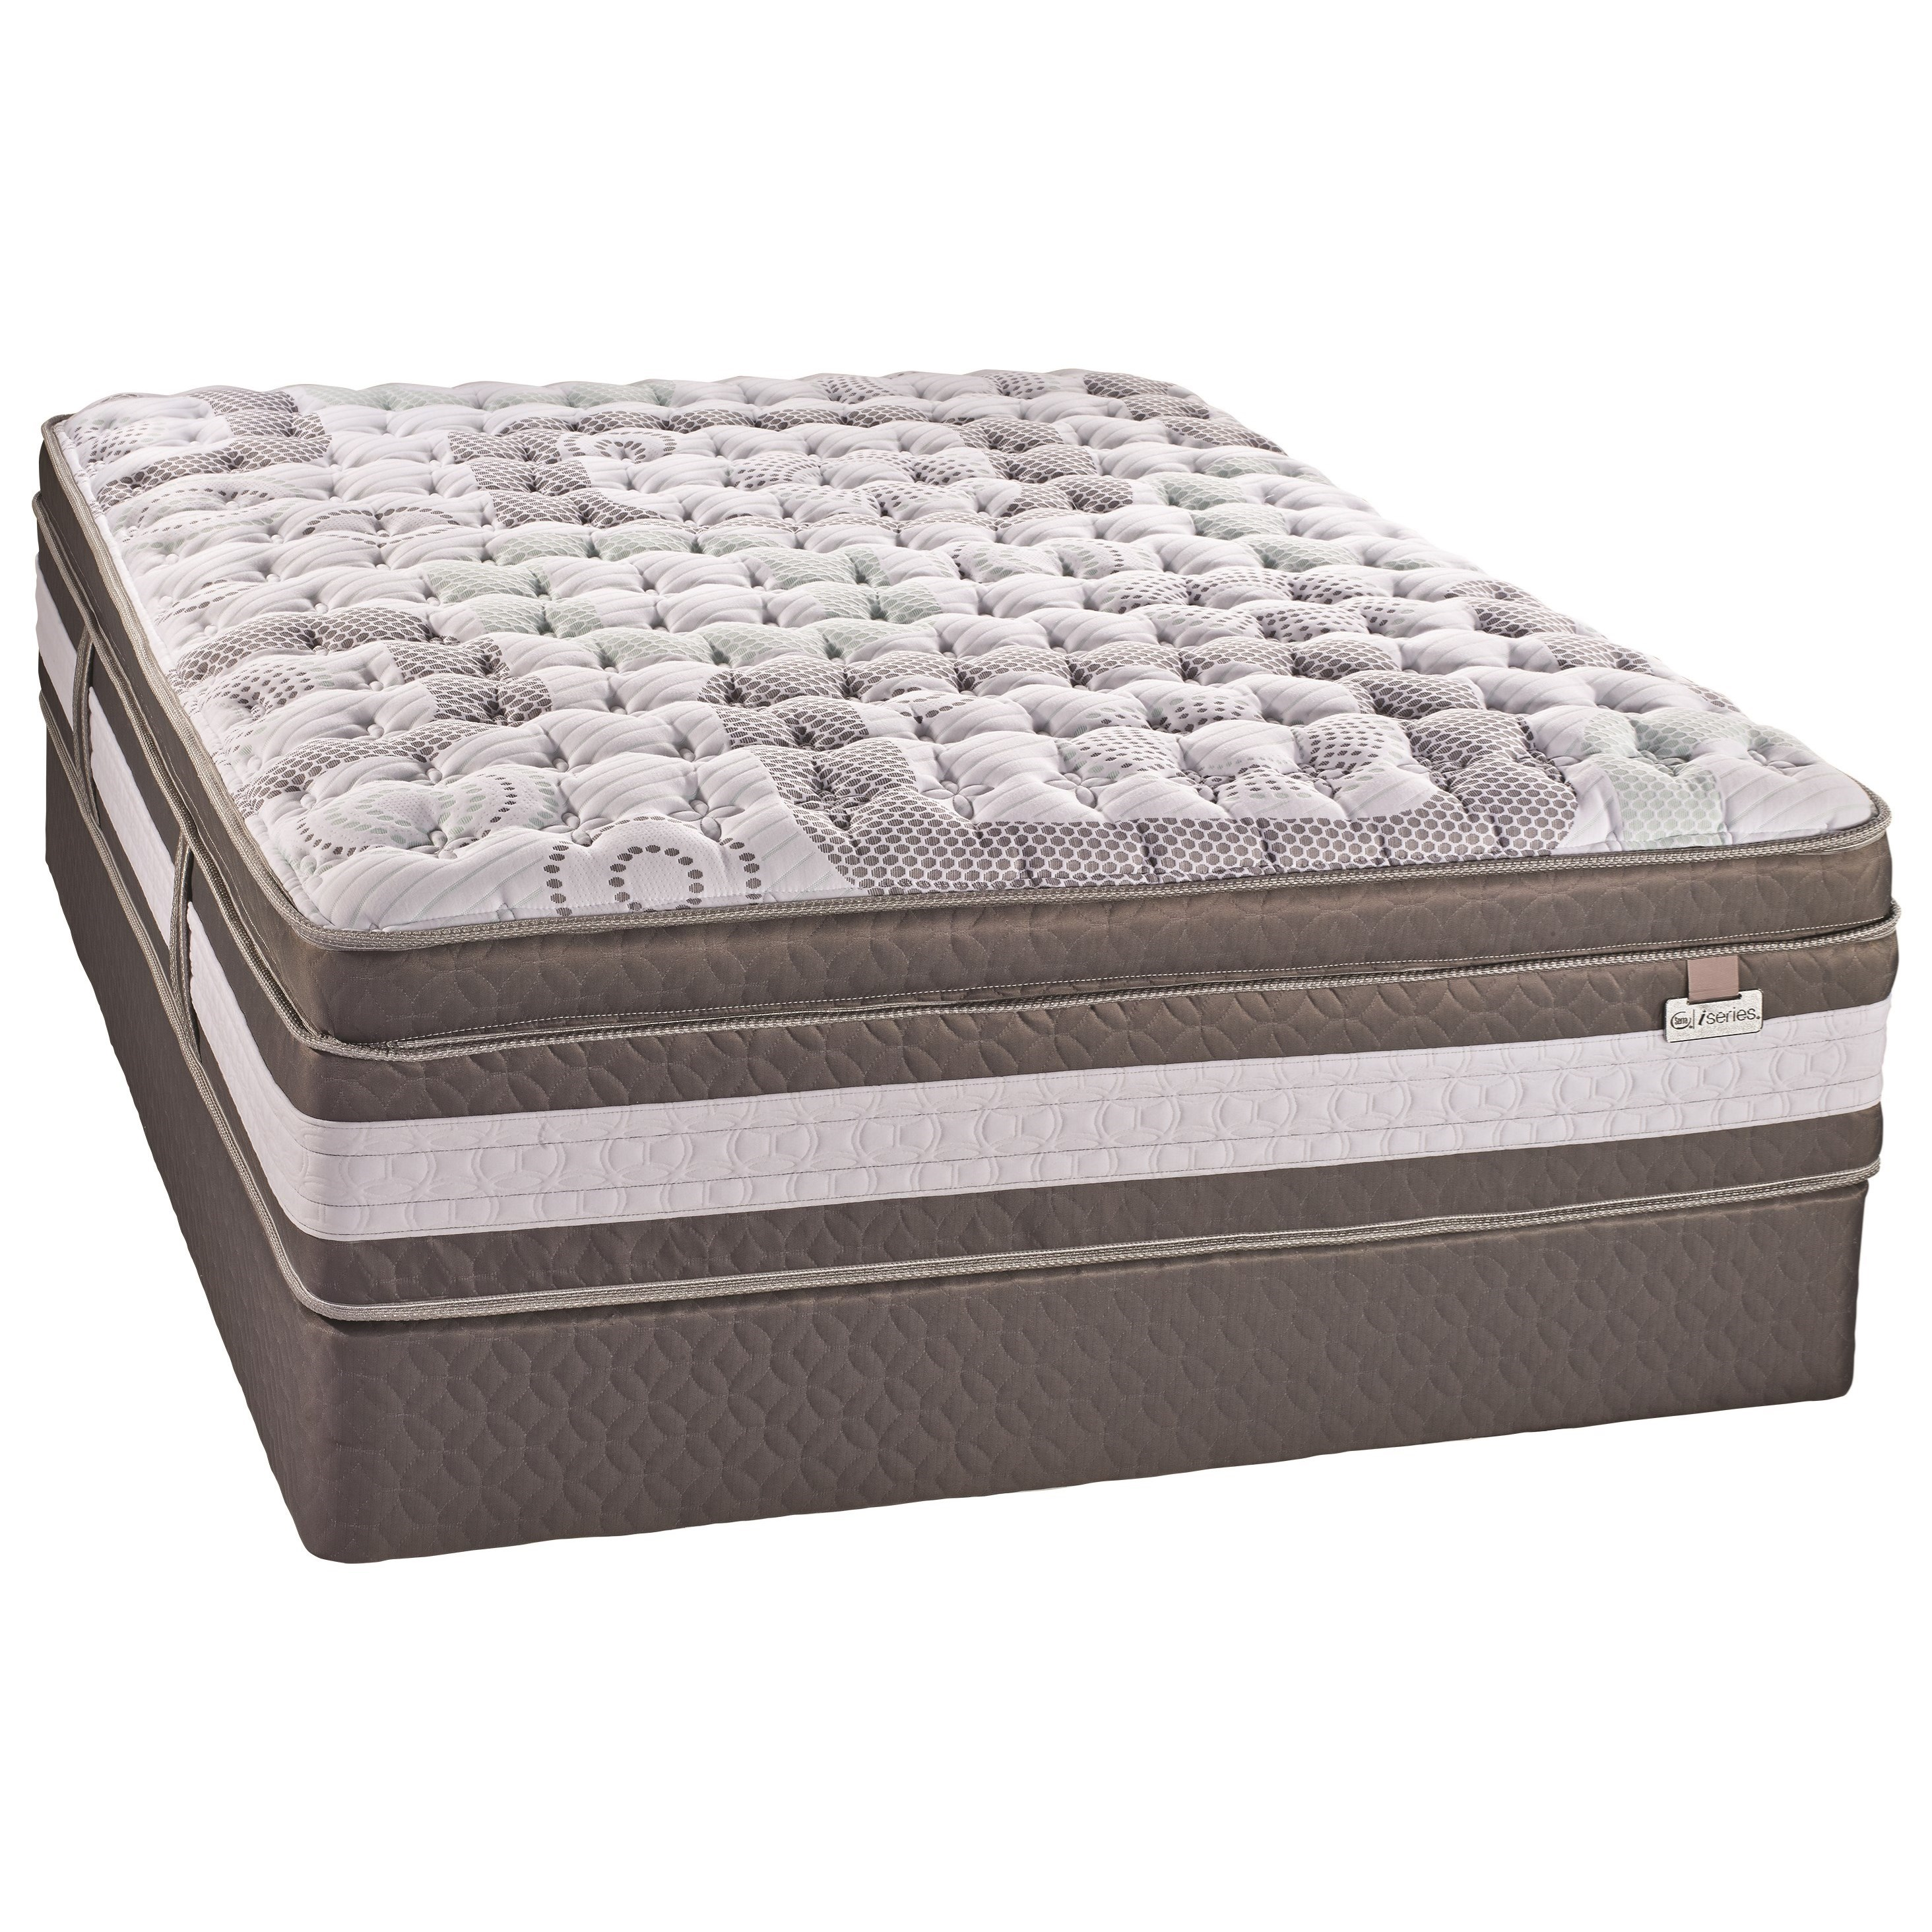 Serta Canada Artistry II Plush ET King Euro Top Plush Hybrid Mattress Set - Item Number: 500420436-K+2x500420099-TXL